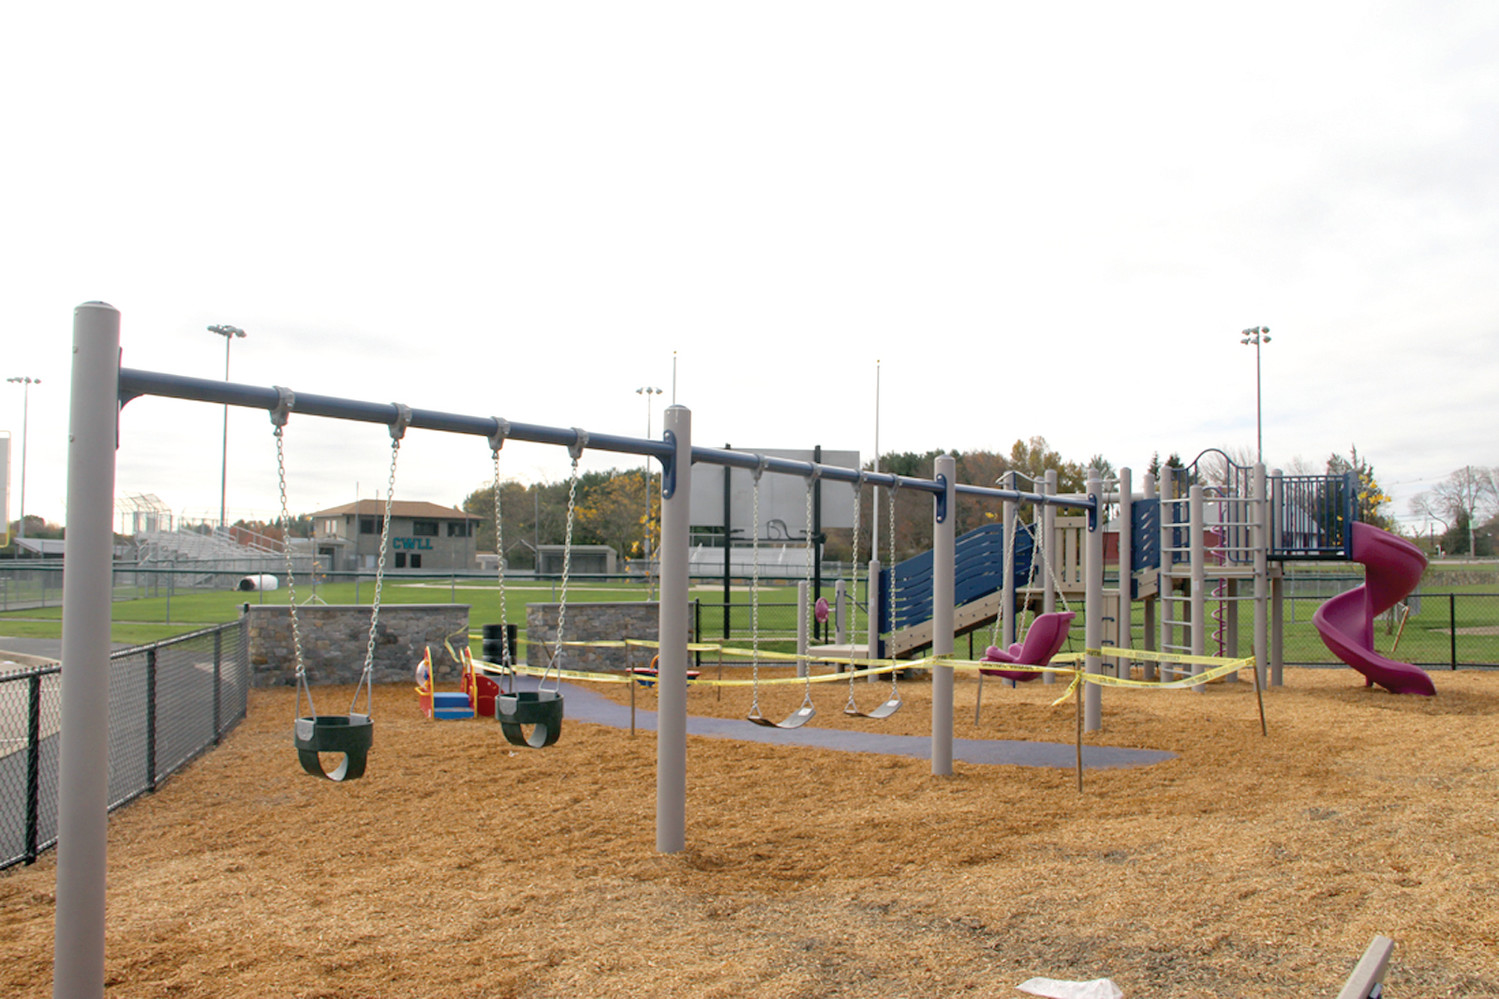 COMPLETING THE COMPLEX: The playground is the first one at the CLCF John Chafee Complex in Cranston, which already has baseball fields and tennis courts, and will provide younger kids with a place to have fun.